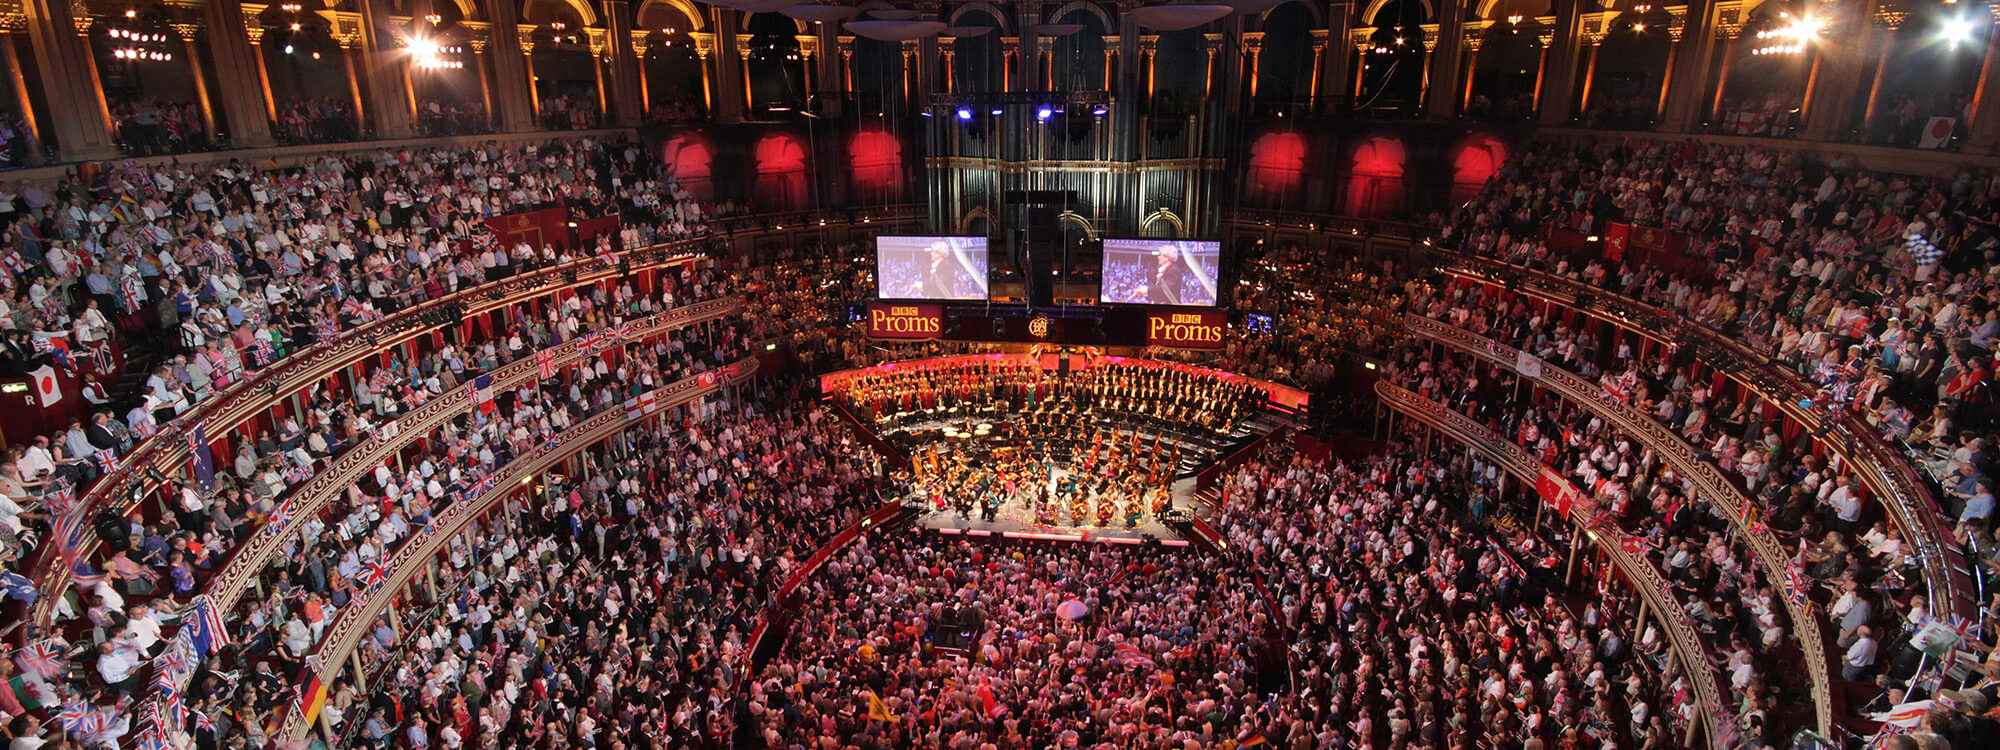 Royal Albert Hall feature banner